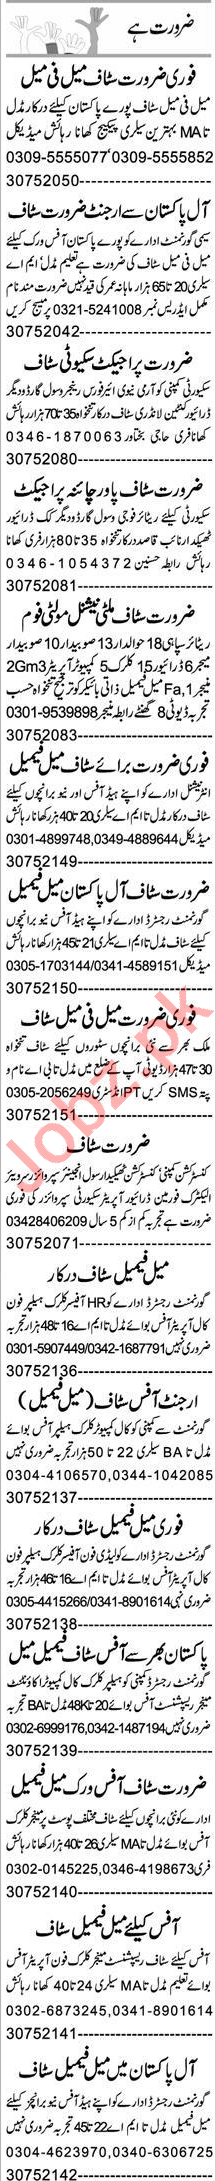 Promotion Officer & Office Assistant Jobs 2020 in Multan